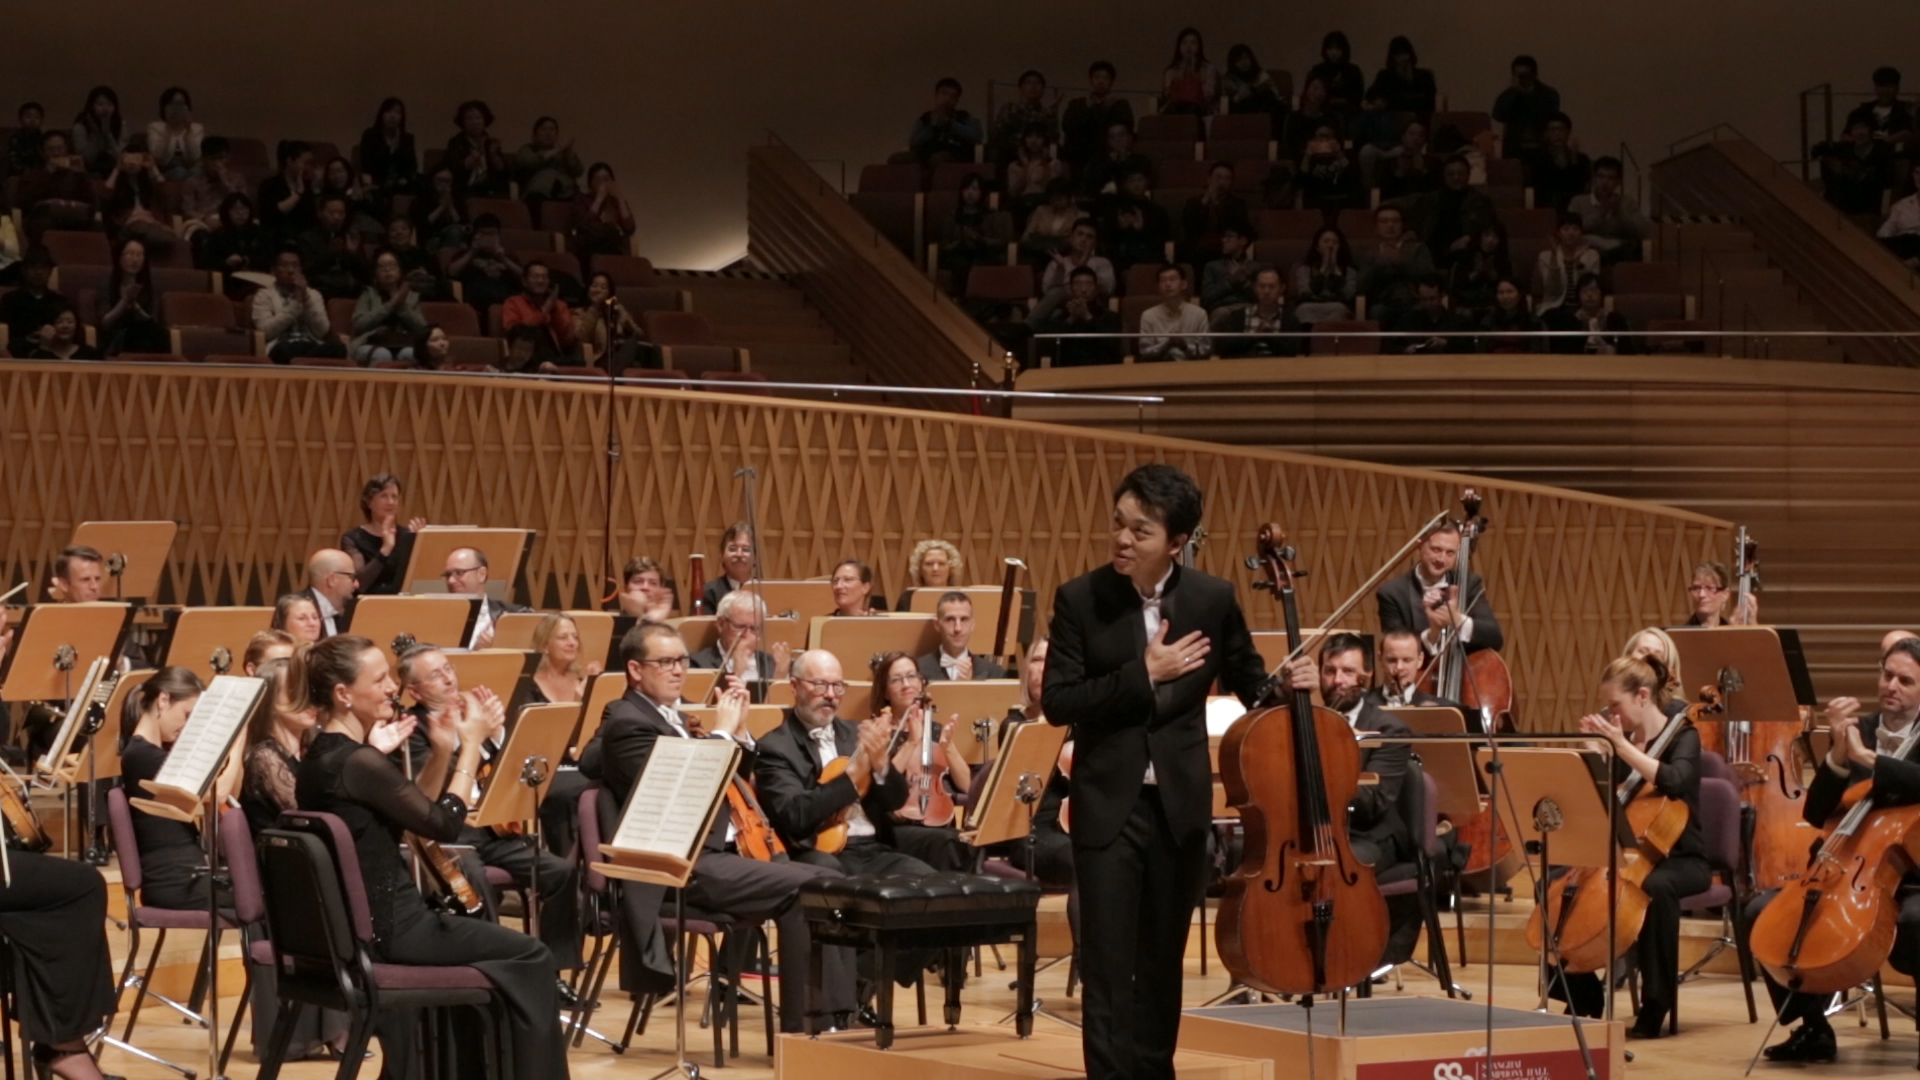 Shanghai born Australian cellist Li-Wei Qin performing with Sir Andrew Davis and the MSO